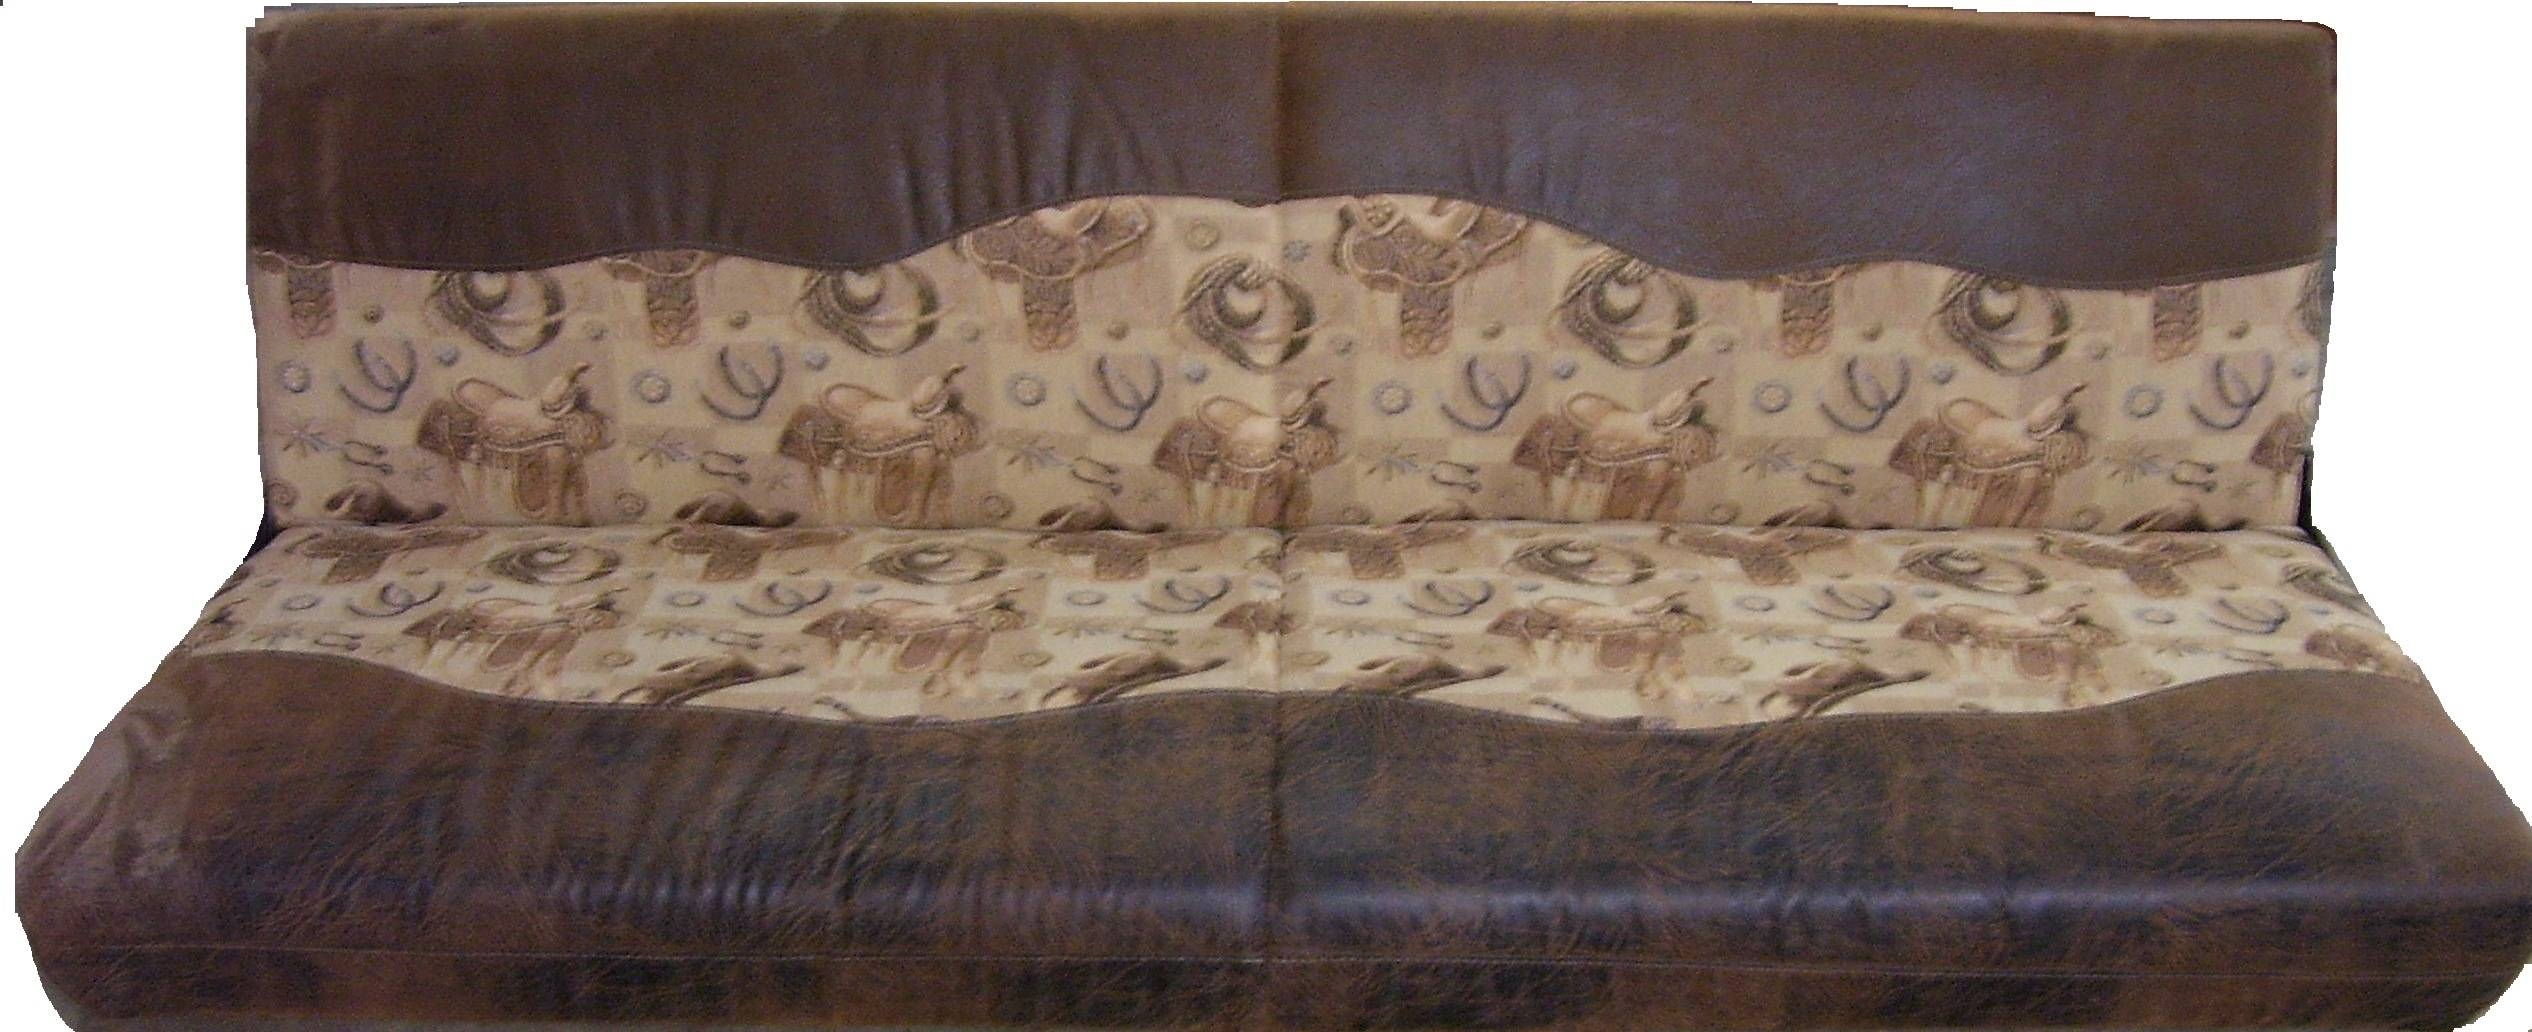 Coloradojk for Rv Jackknife Sofas (Image 4 of 15)